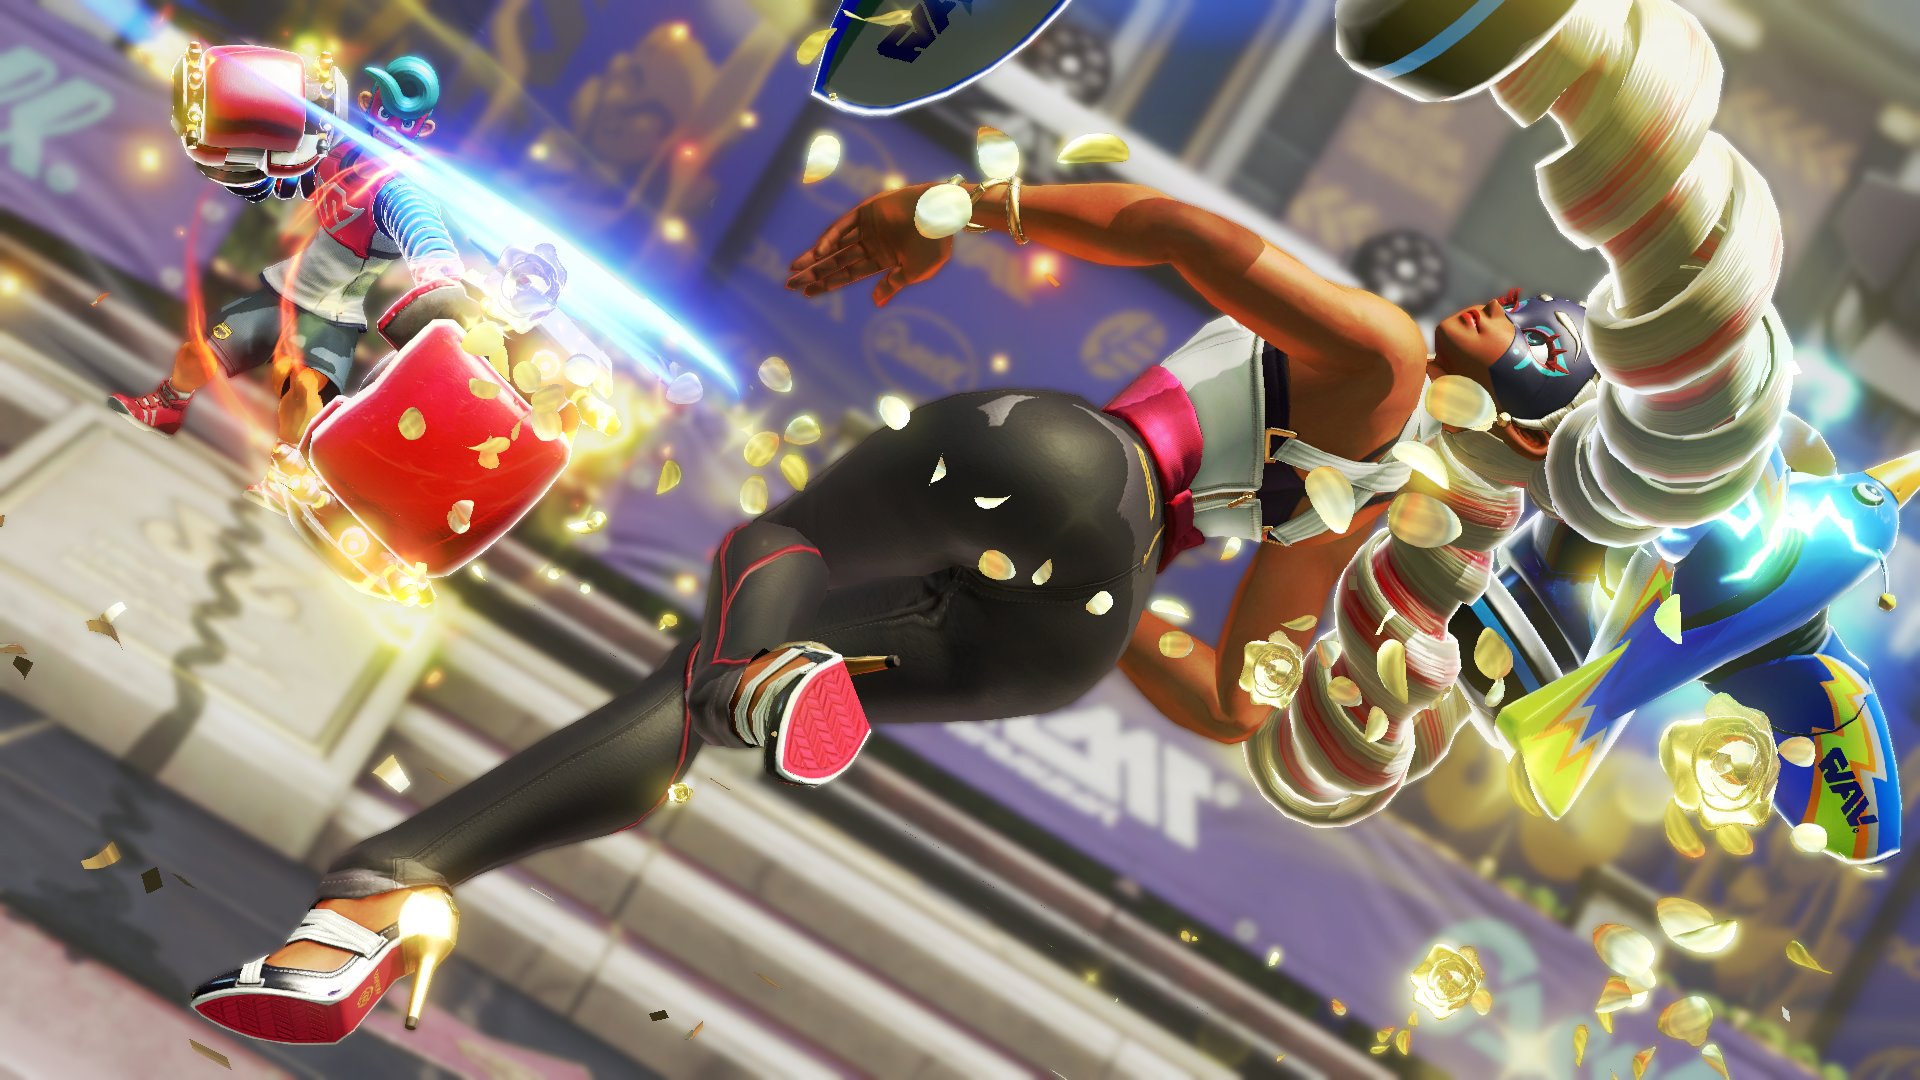 The Global Testpunch trial for Arms includes Hoops mode and local multiplayer screenshot